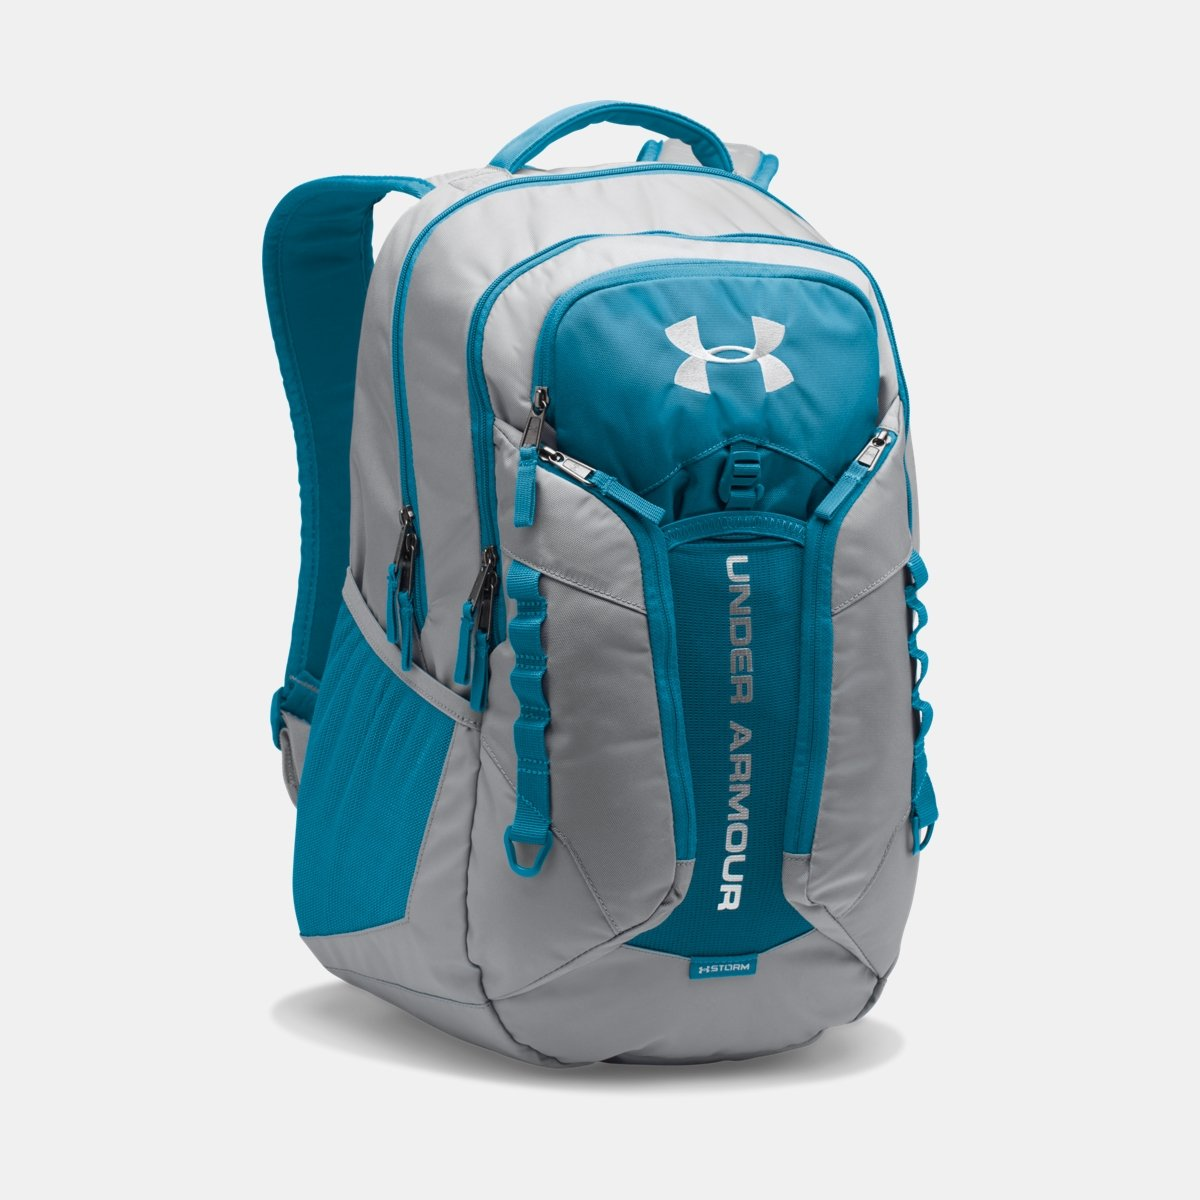 [UNDER ARMOUR] アンダーアーマー UA Storm Contender Backpack [並行輸入品]  Steel/Bayou B0753BZ9CY